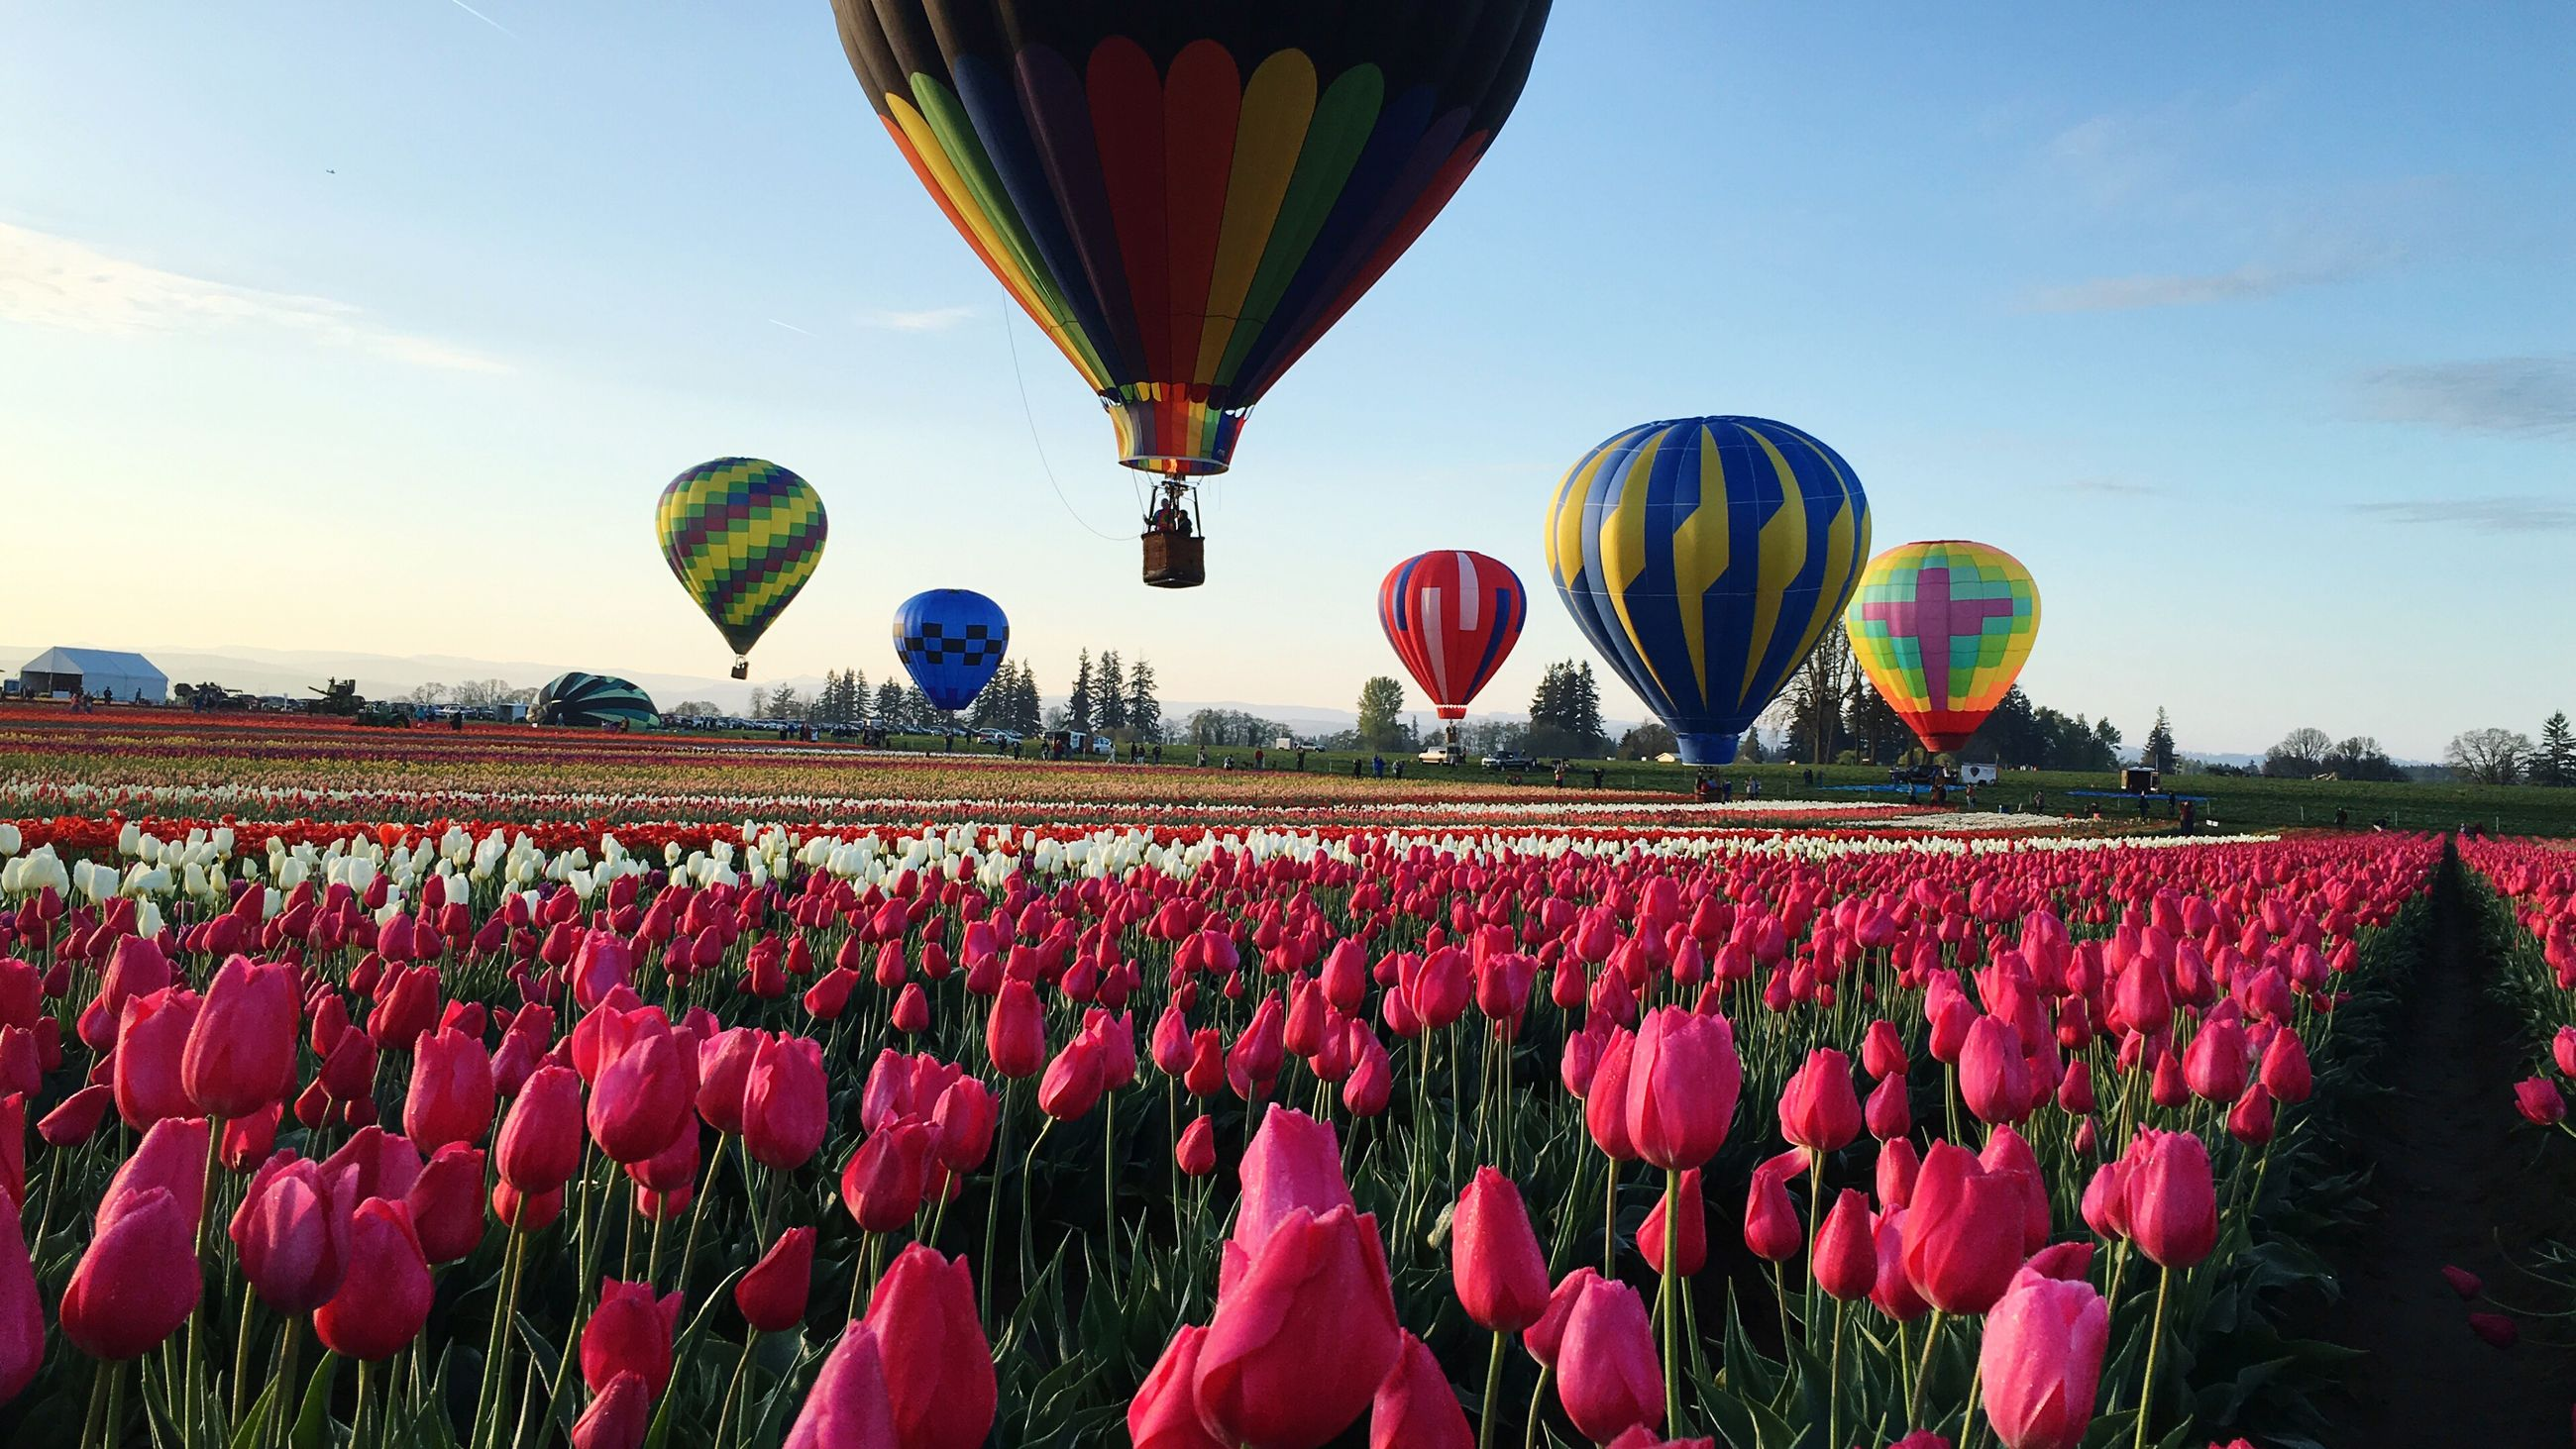 large group of people, sky, hot air balloon, flying, nature, celebration, outdoors, day, ballooning festival, crowd